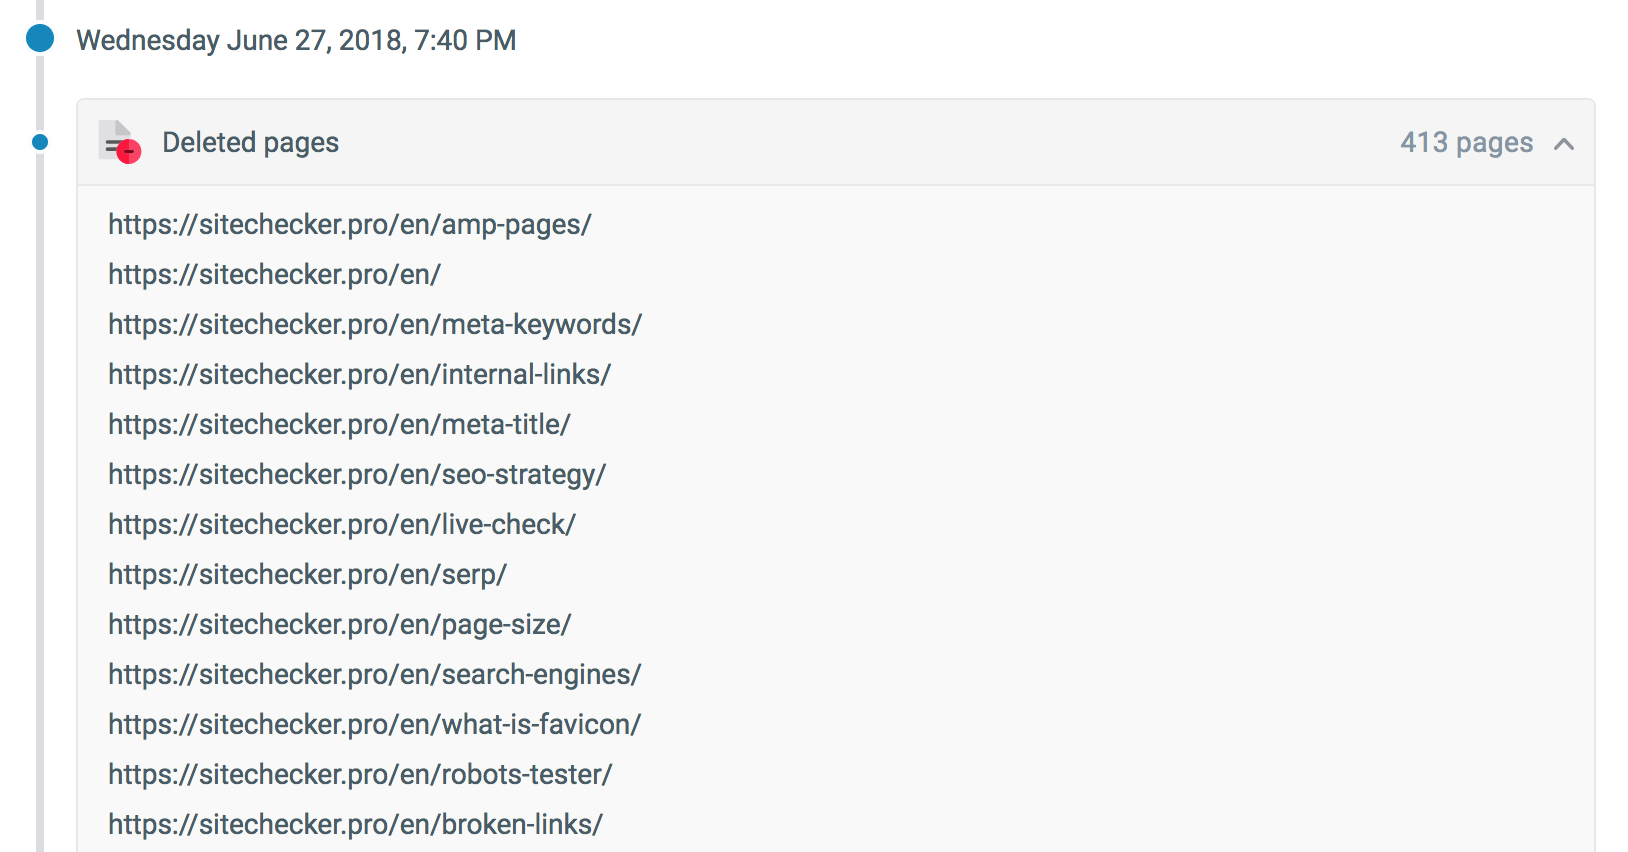 website_monitoring_5.png